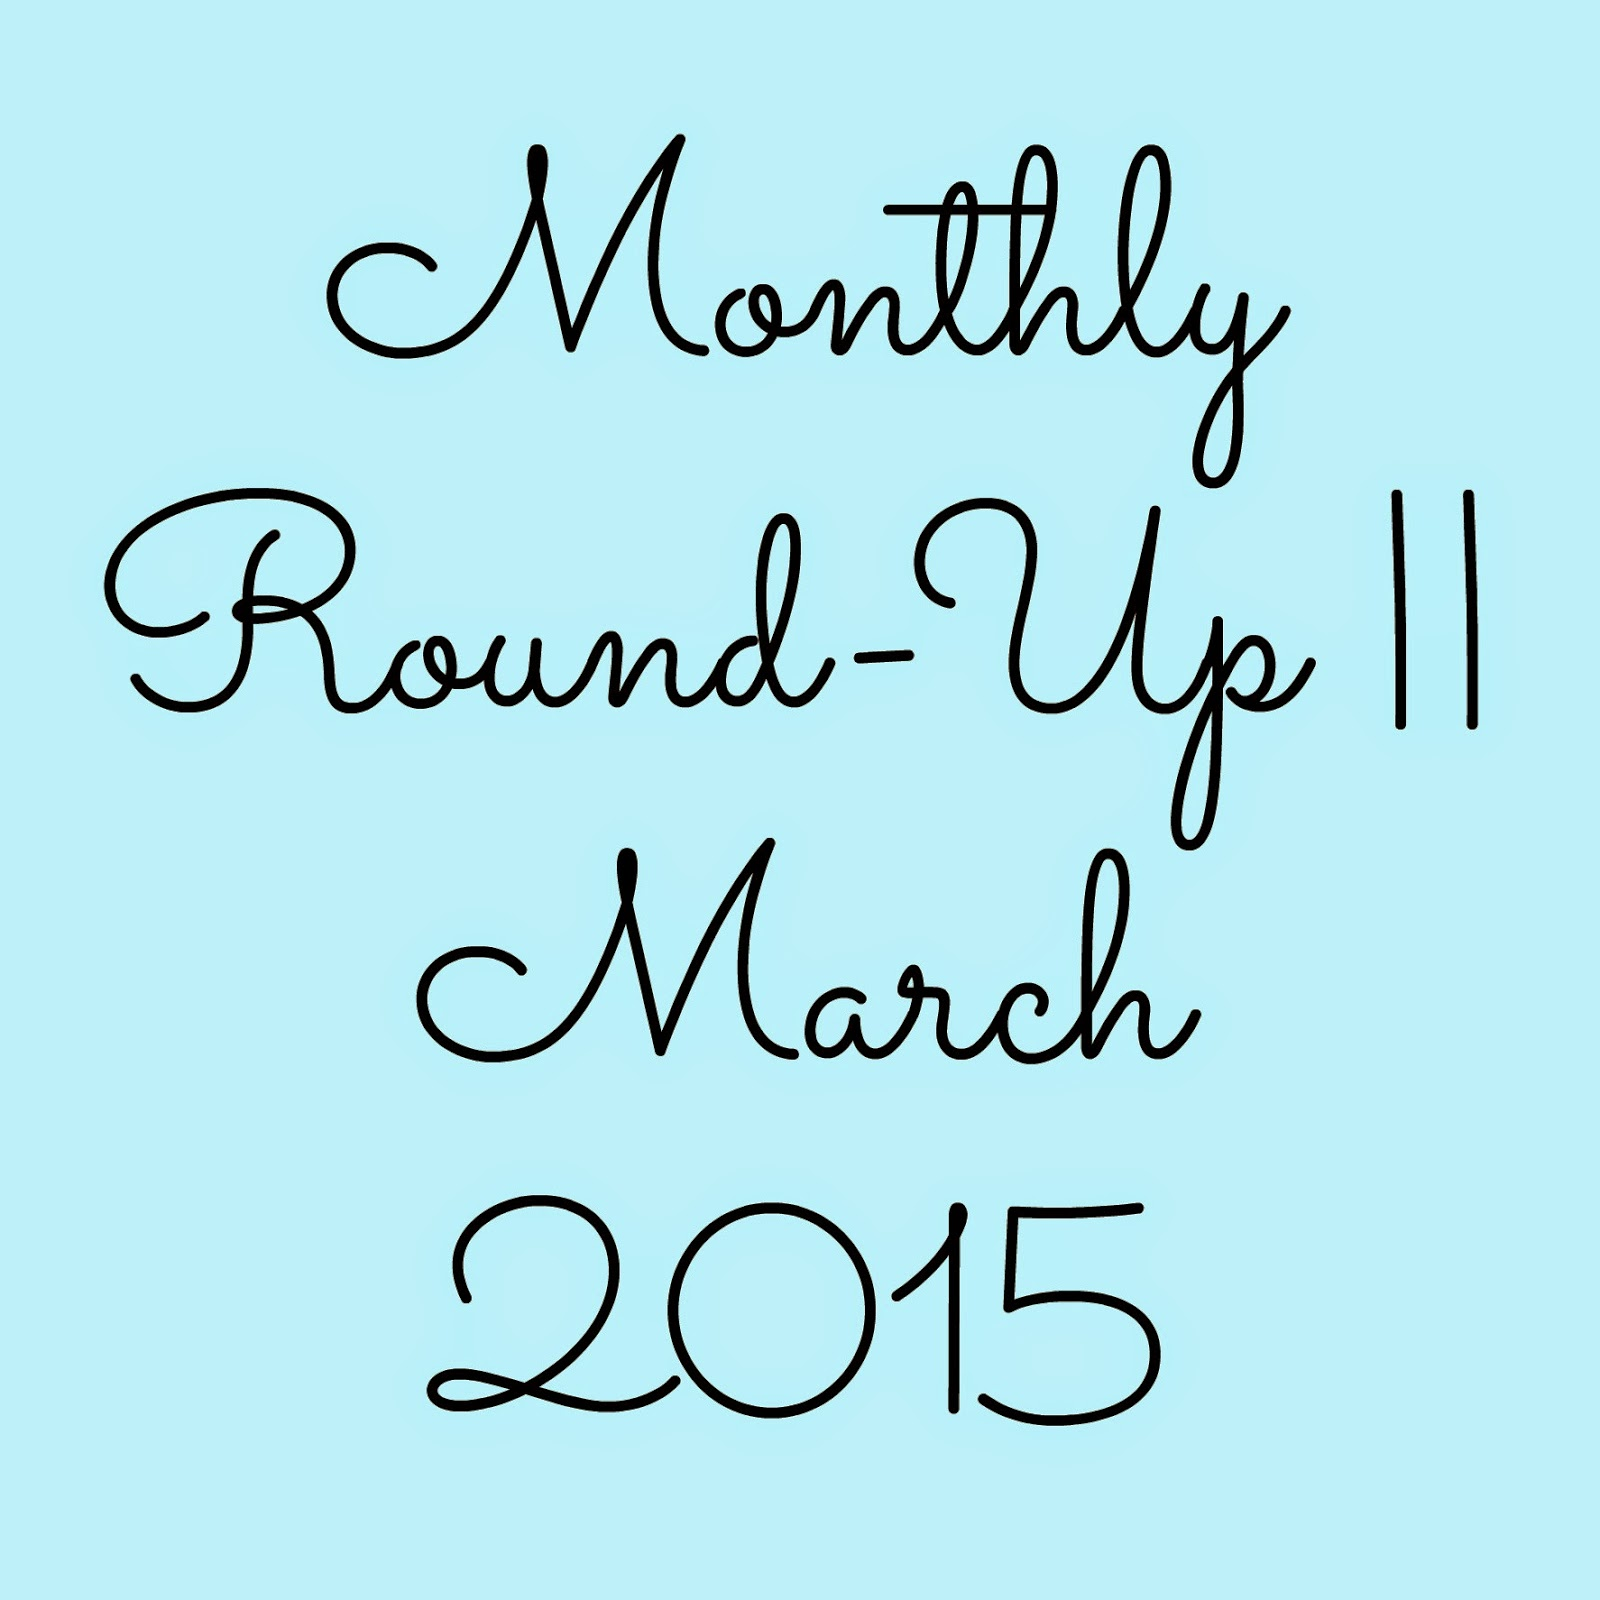 Bows and Clothes: Monthly Round-up: March 2015. Where I round-up the most viewed post, the most shared post, and the post that got the most comments. http://mybowsandclothes.blogspot.com/